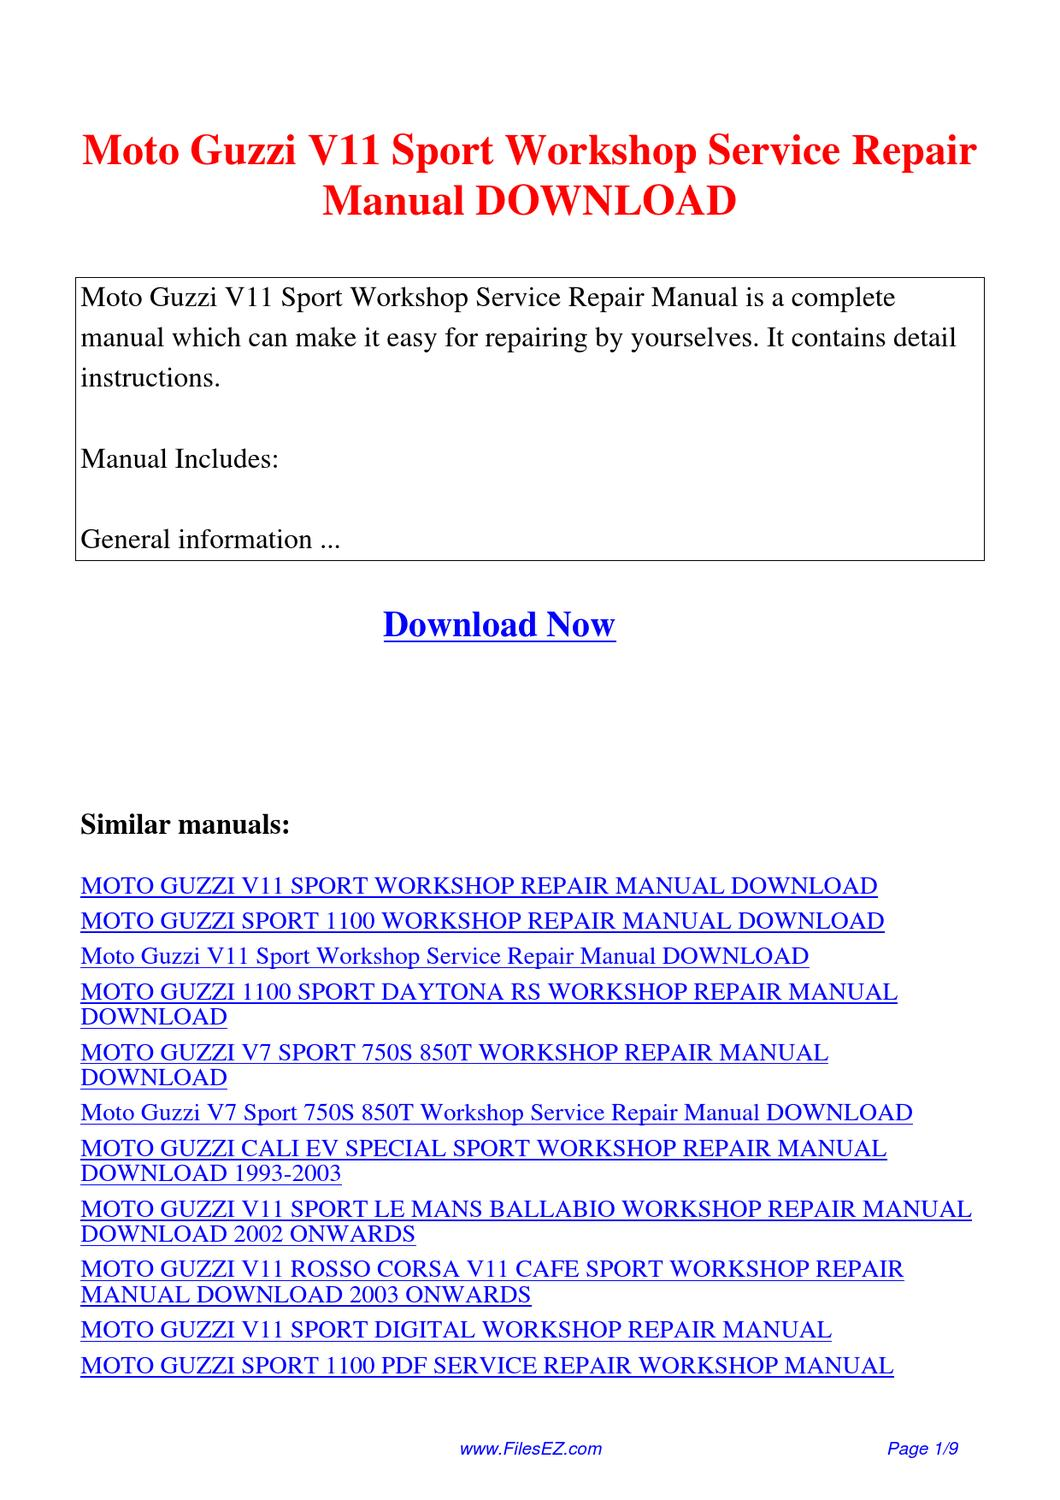 Moto Guzzi V11 Sport Workshop Service Repair Manual By